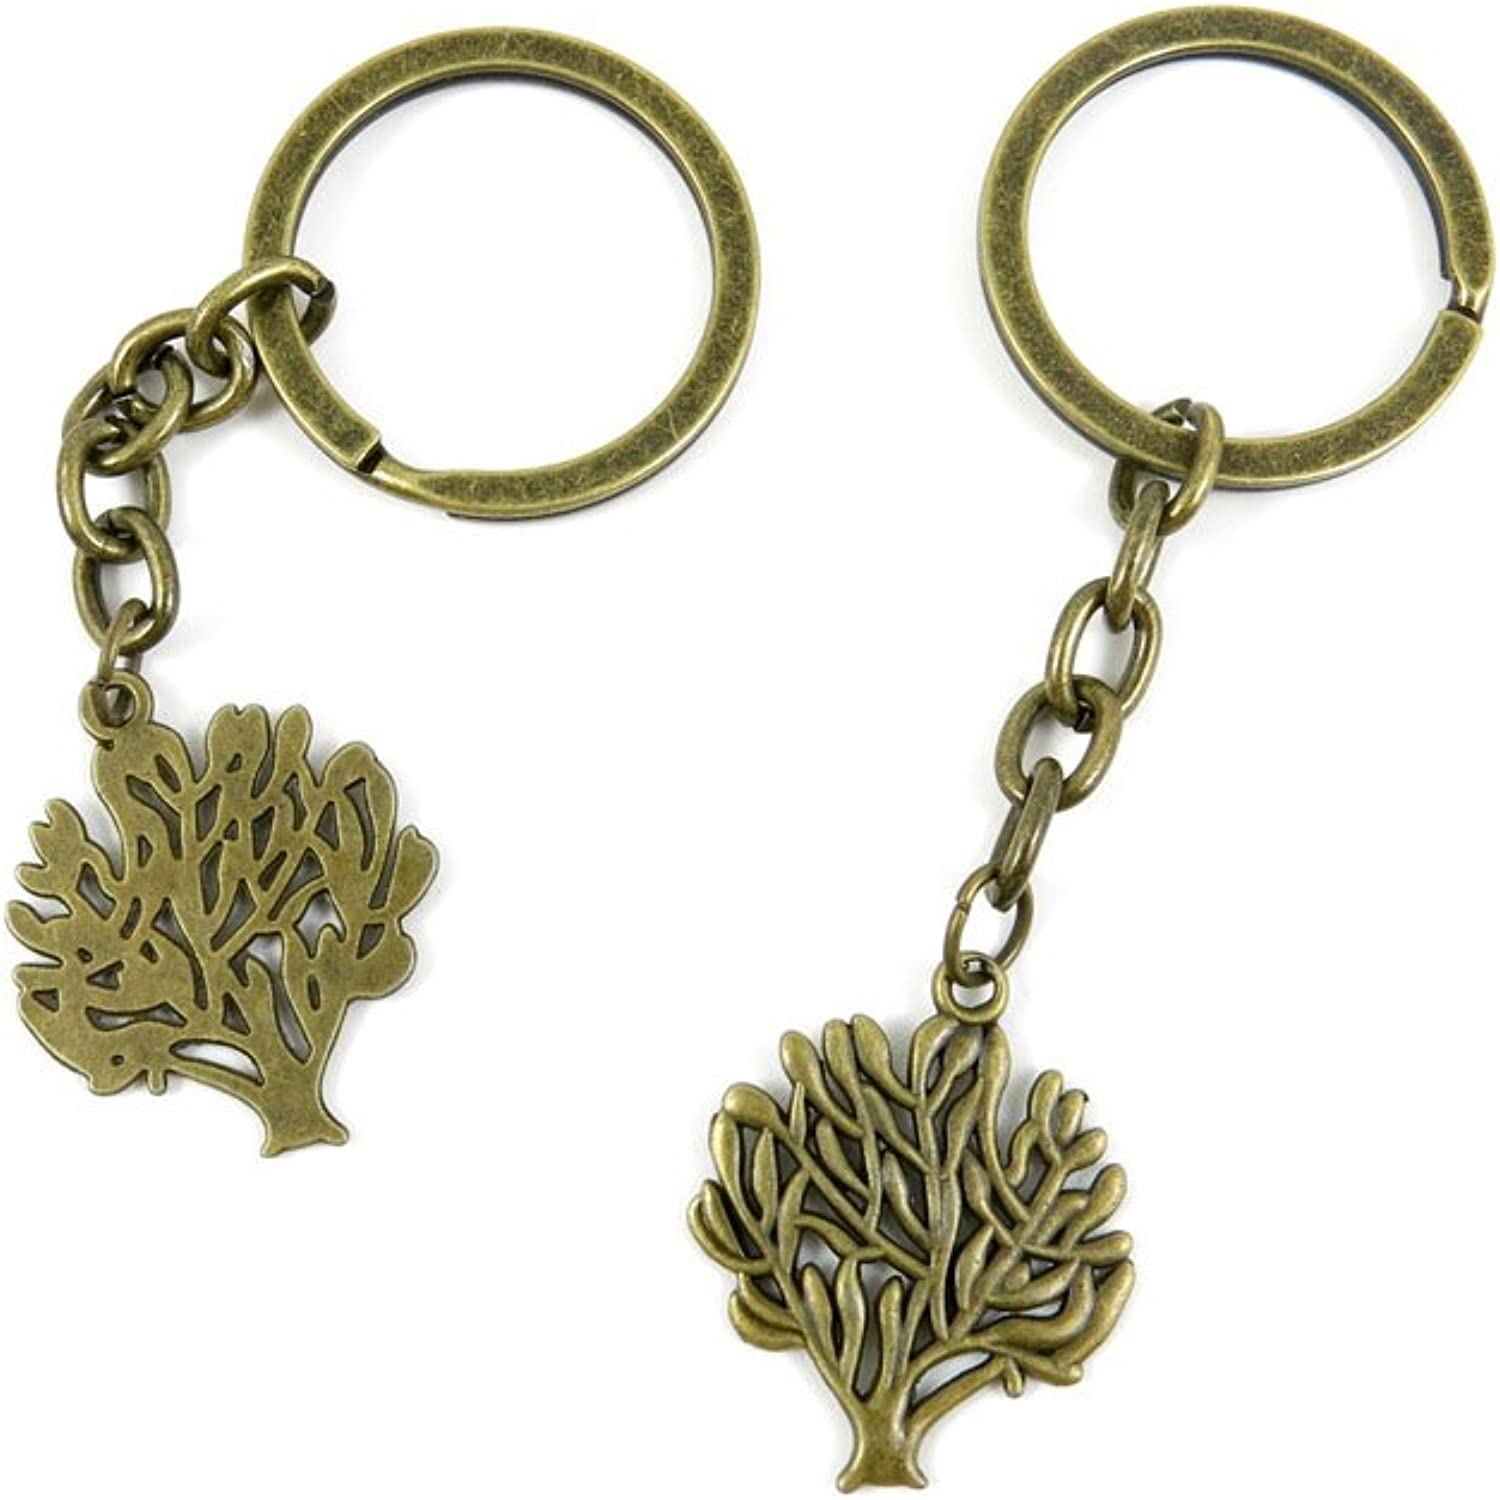 100 PCS Keyrings Keychains Key Ring Chains Tags Jewelry Findings Clasps Buckles Supplies H0VR2 Tree Oak